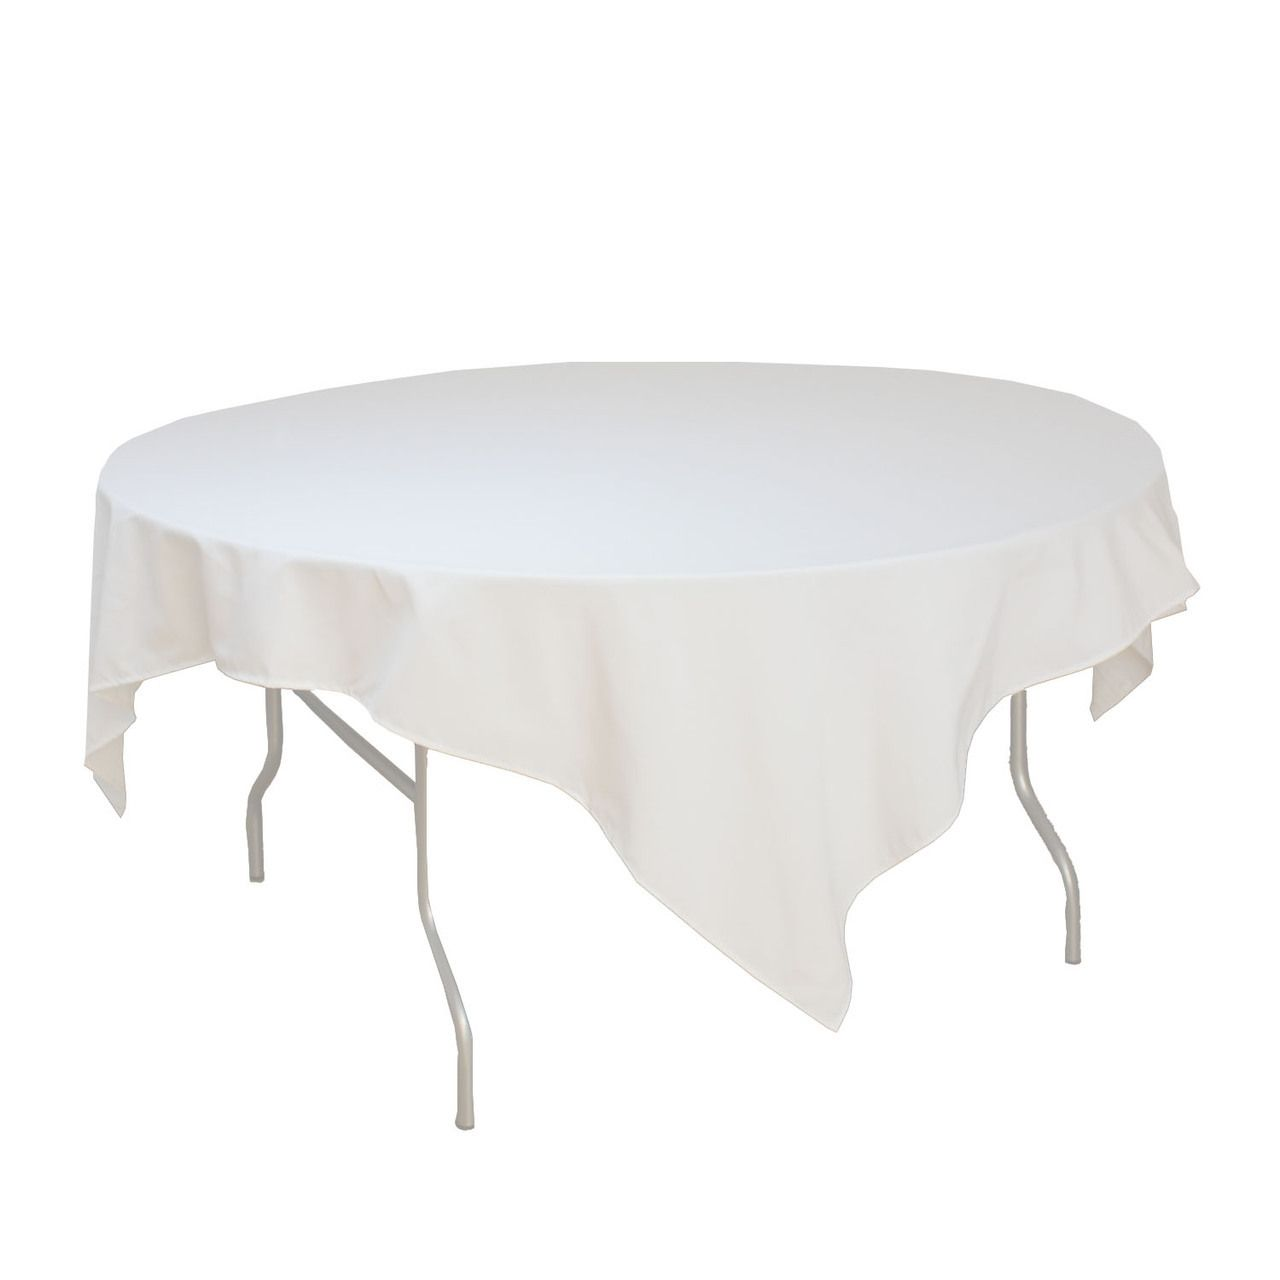 Perfect 72 X 72 Inches Square White Tablecloth